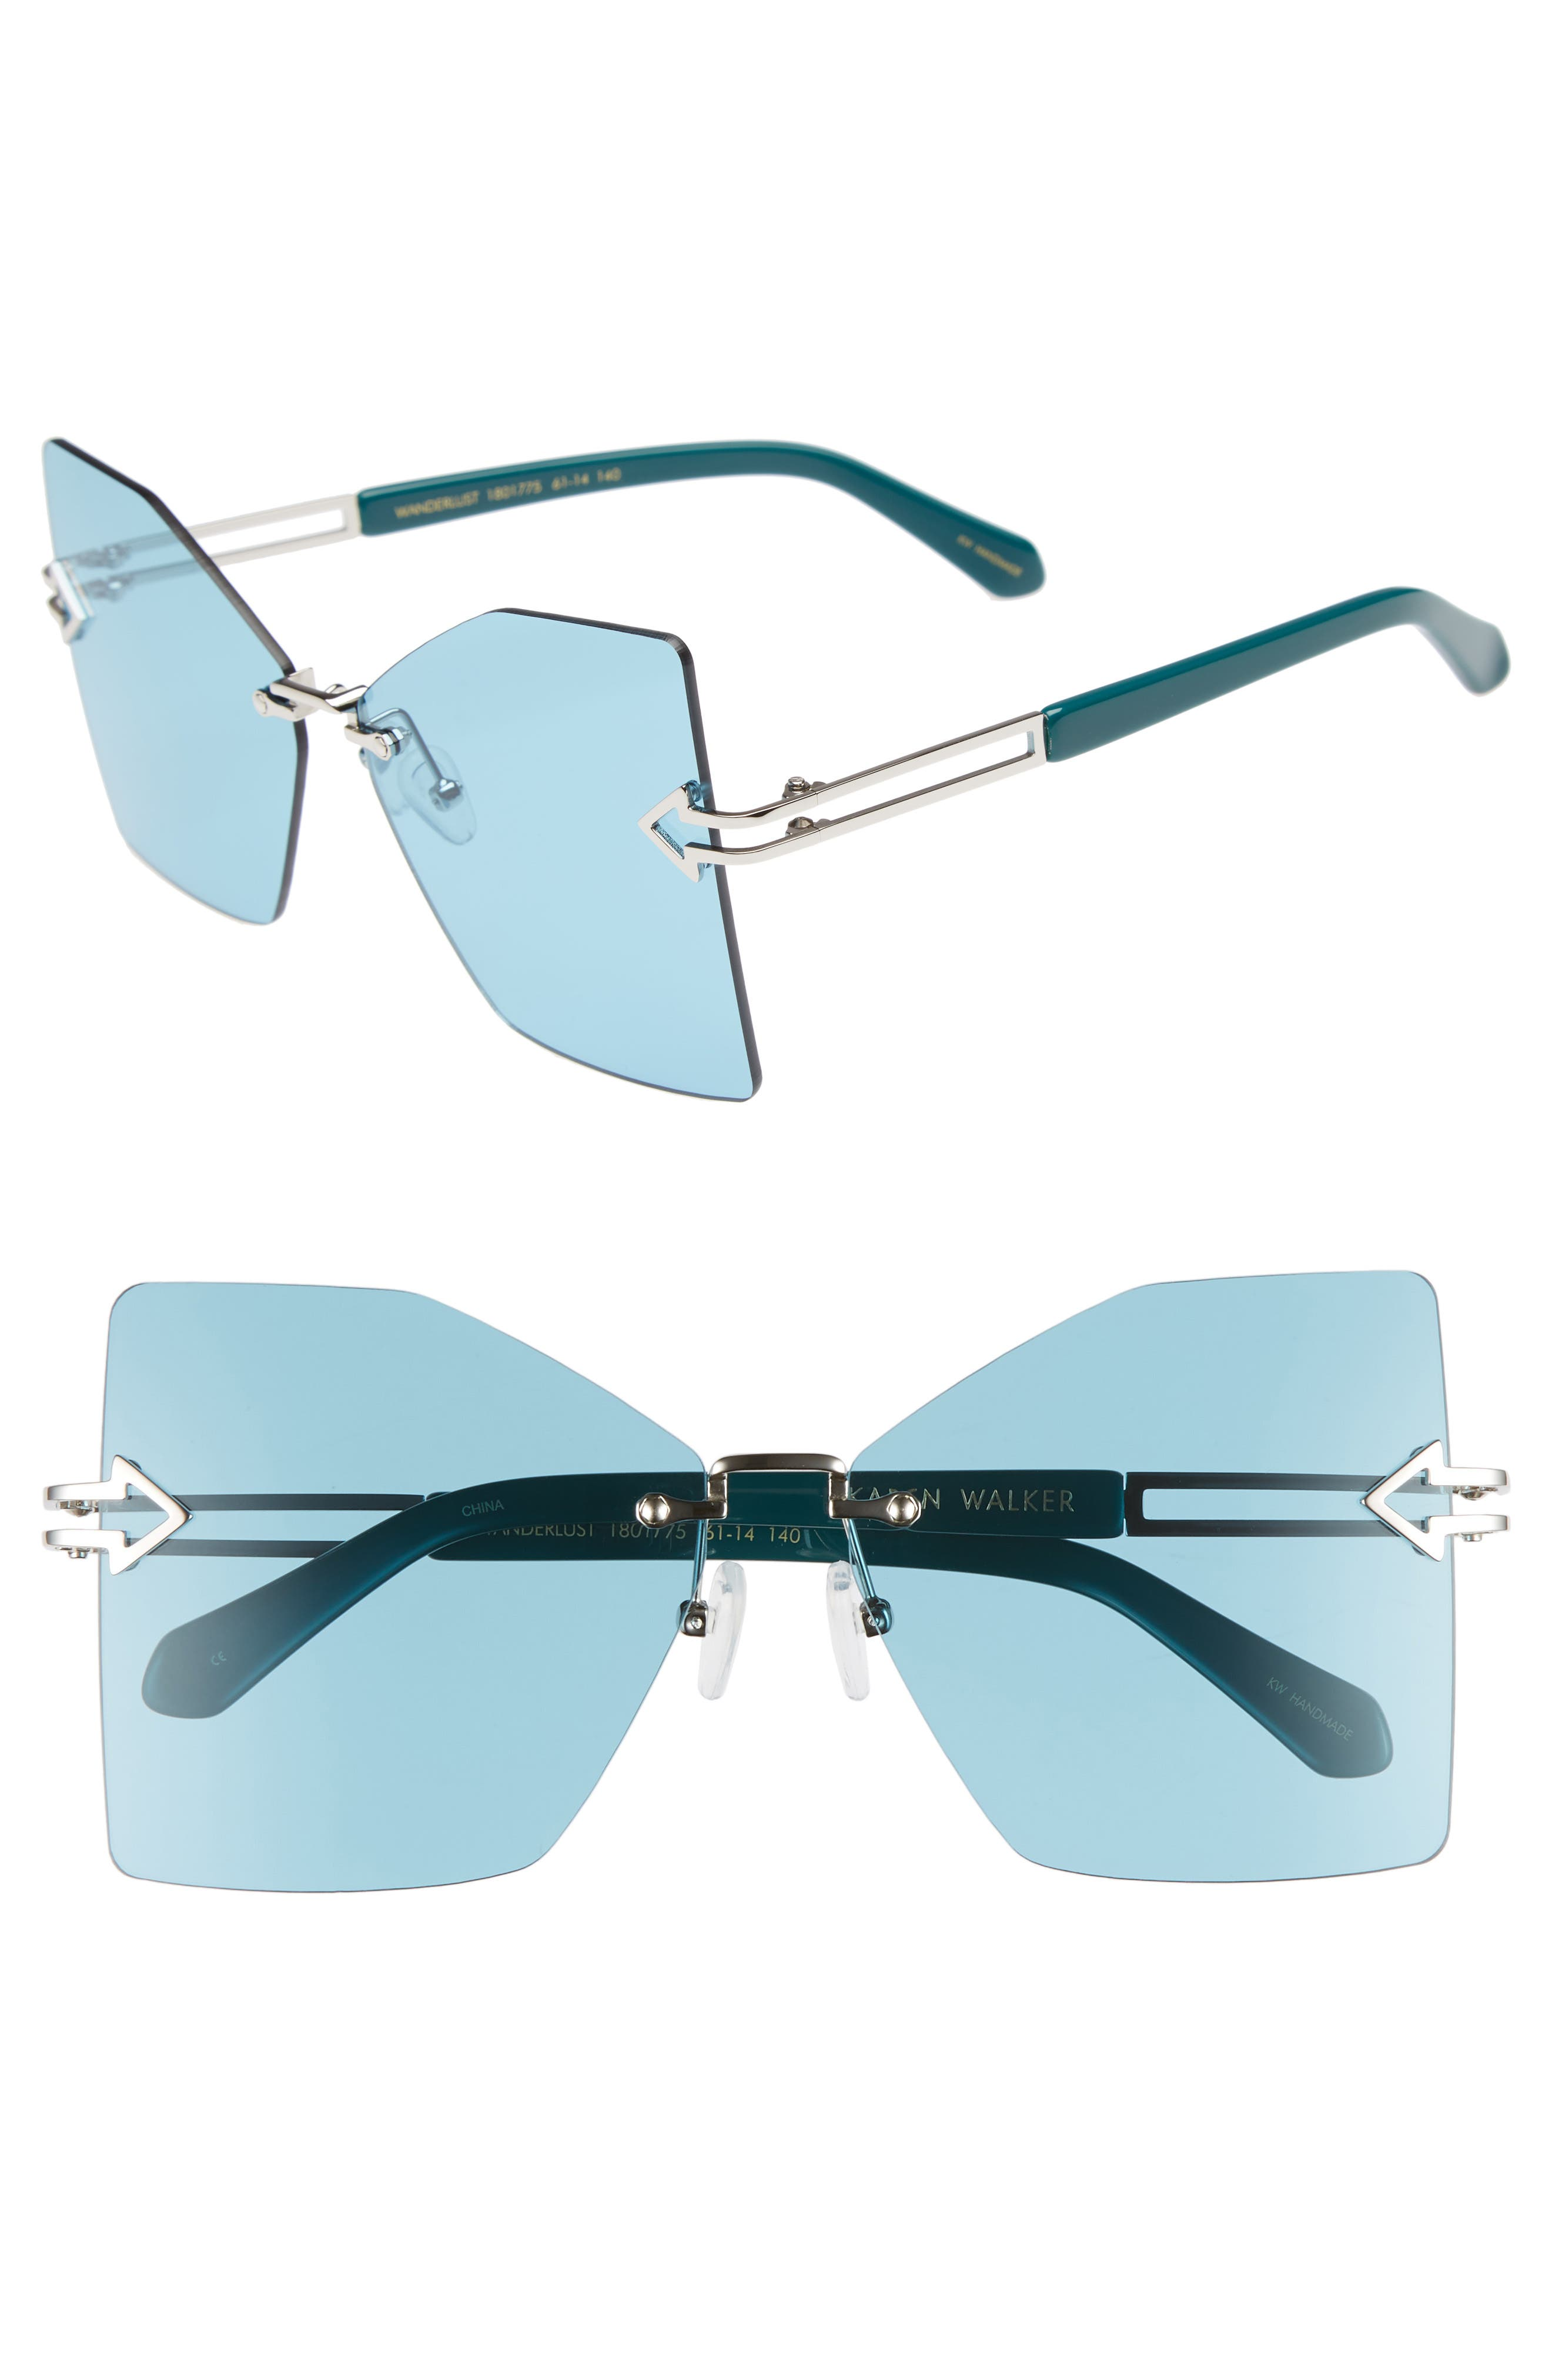 Wanderlust 61mm Butterfly Sunglasses,                         Main,                         color, SHINY SILVER/ EMERALD